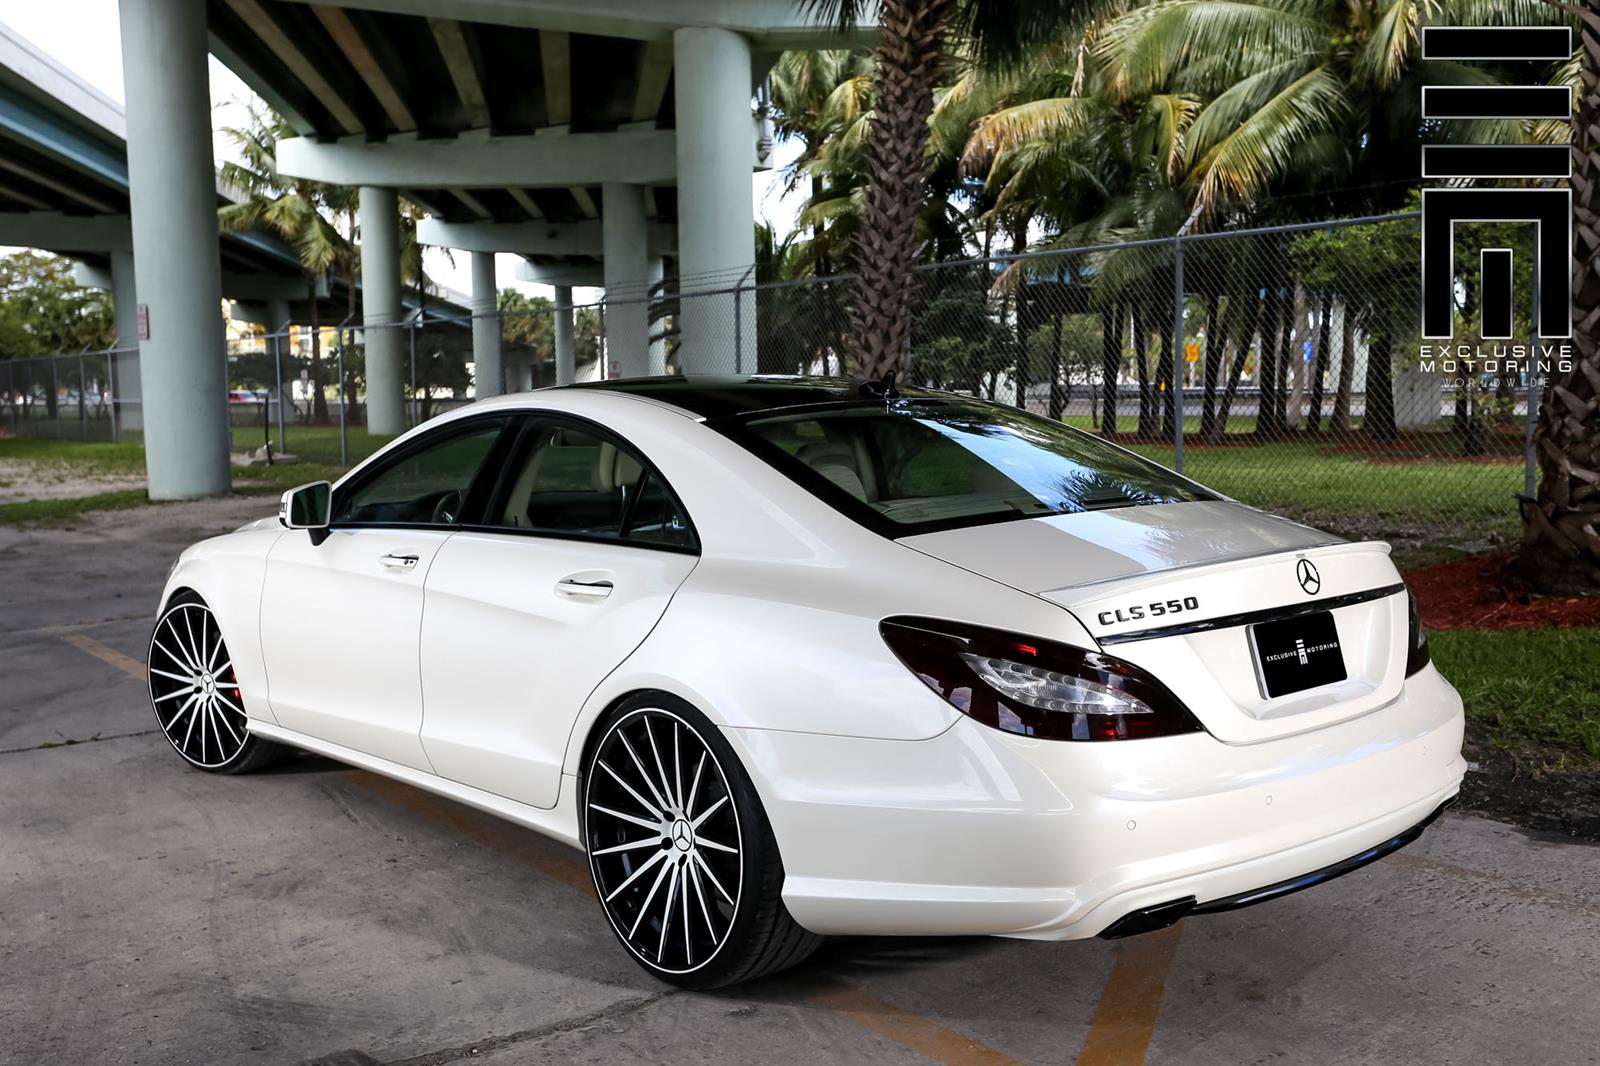 Mercedes benz w218 cls550 white on vossen vfs2 wheels for Mercedes benz wheels rims